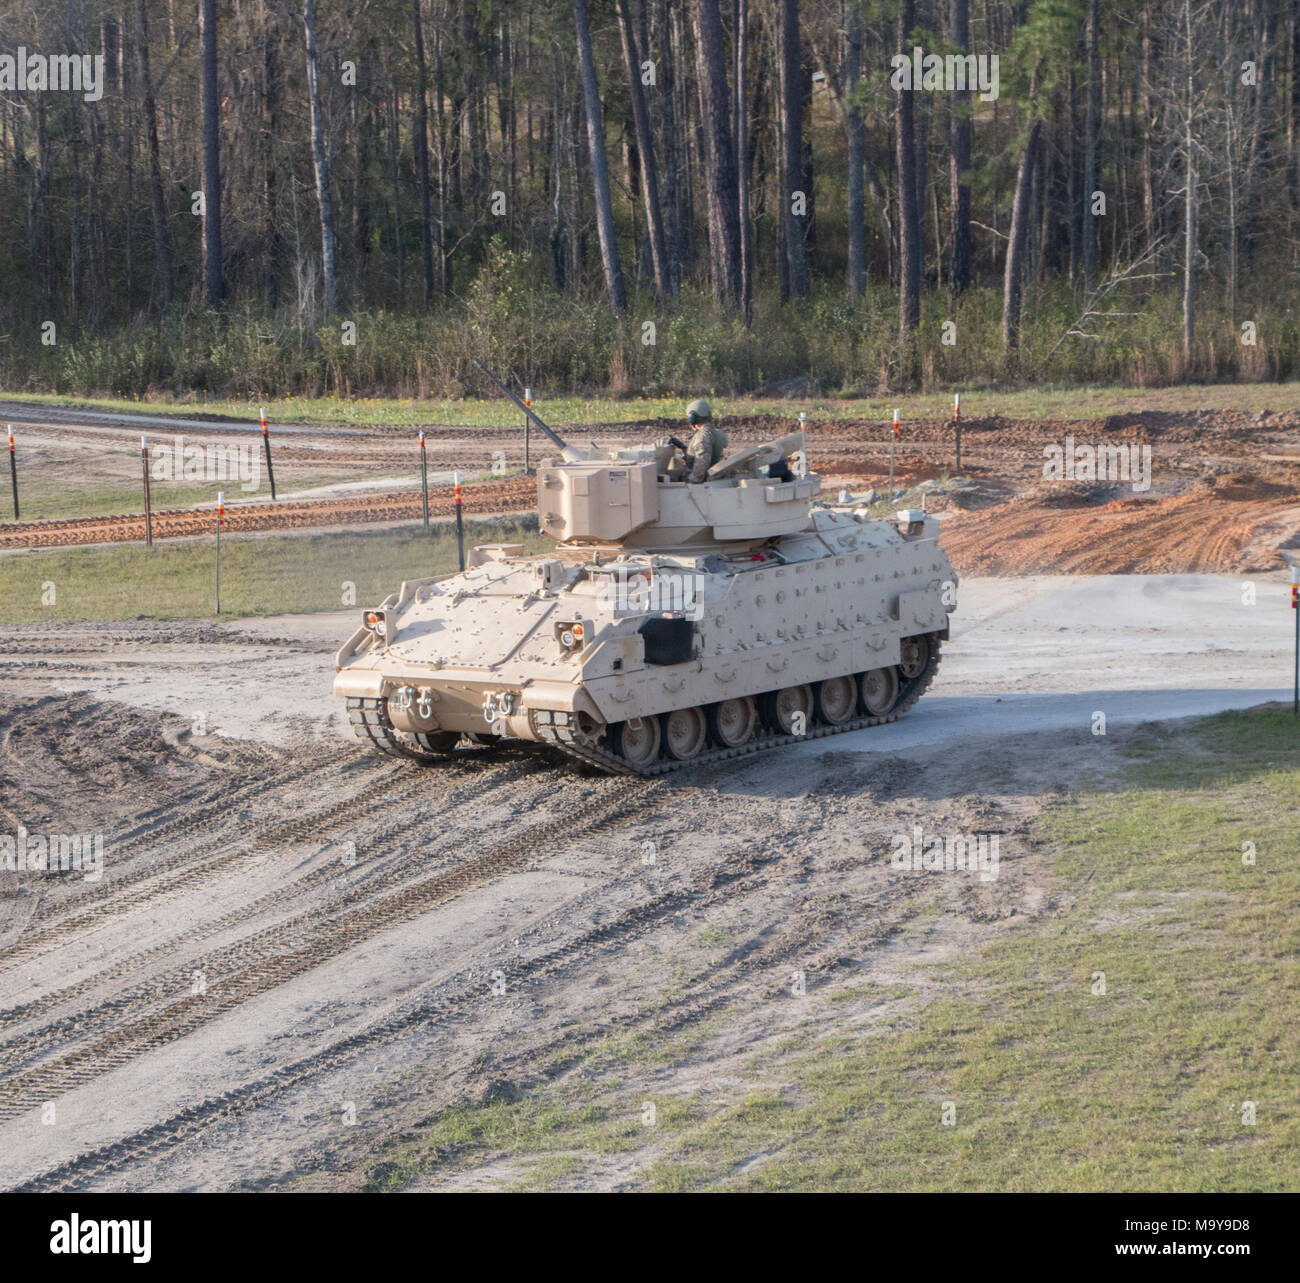 Troopers of 6th Squadron, 8th Cavalry Regiment, 2nd Armored Brigade Combat Team, 3rd Infantry Division, prepare to send a live round down range March 21 at Fort Stewart, Ga. This is the first time live rounds have been fired since the U.S. Army announced that 3rd ID's Spartan Brigade would convert from an infantry to an armored brigade combat team. (U.S. Army photo taken by Spc. Calab Franklin/Released) Stock Photo